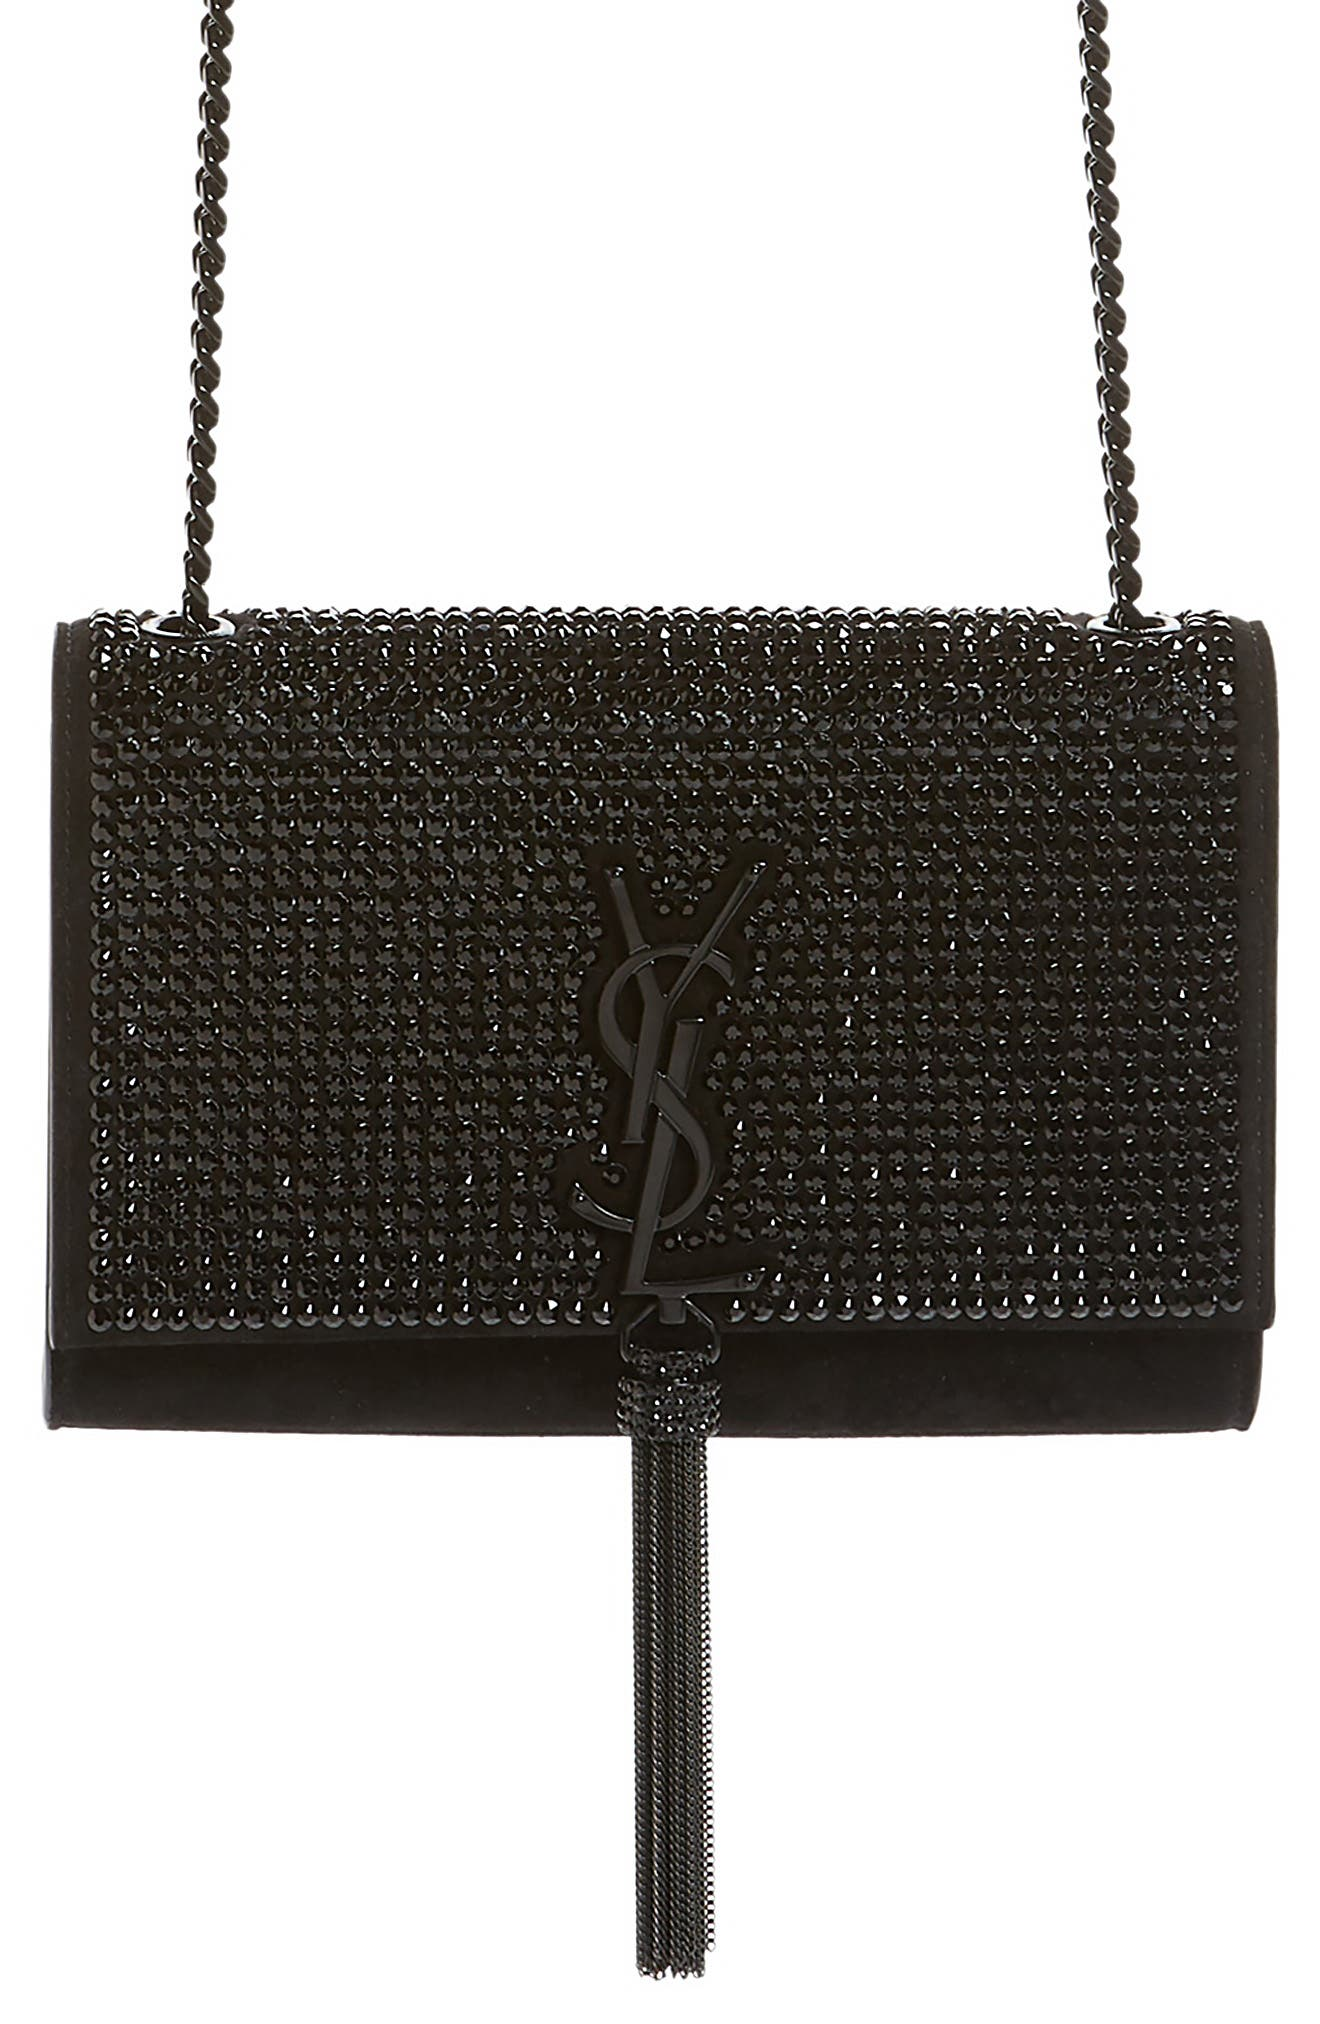 Small Kate Crystal Embellished Crossbody Bag,                         Main,                         color, Nero/ Jet